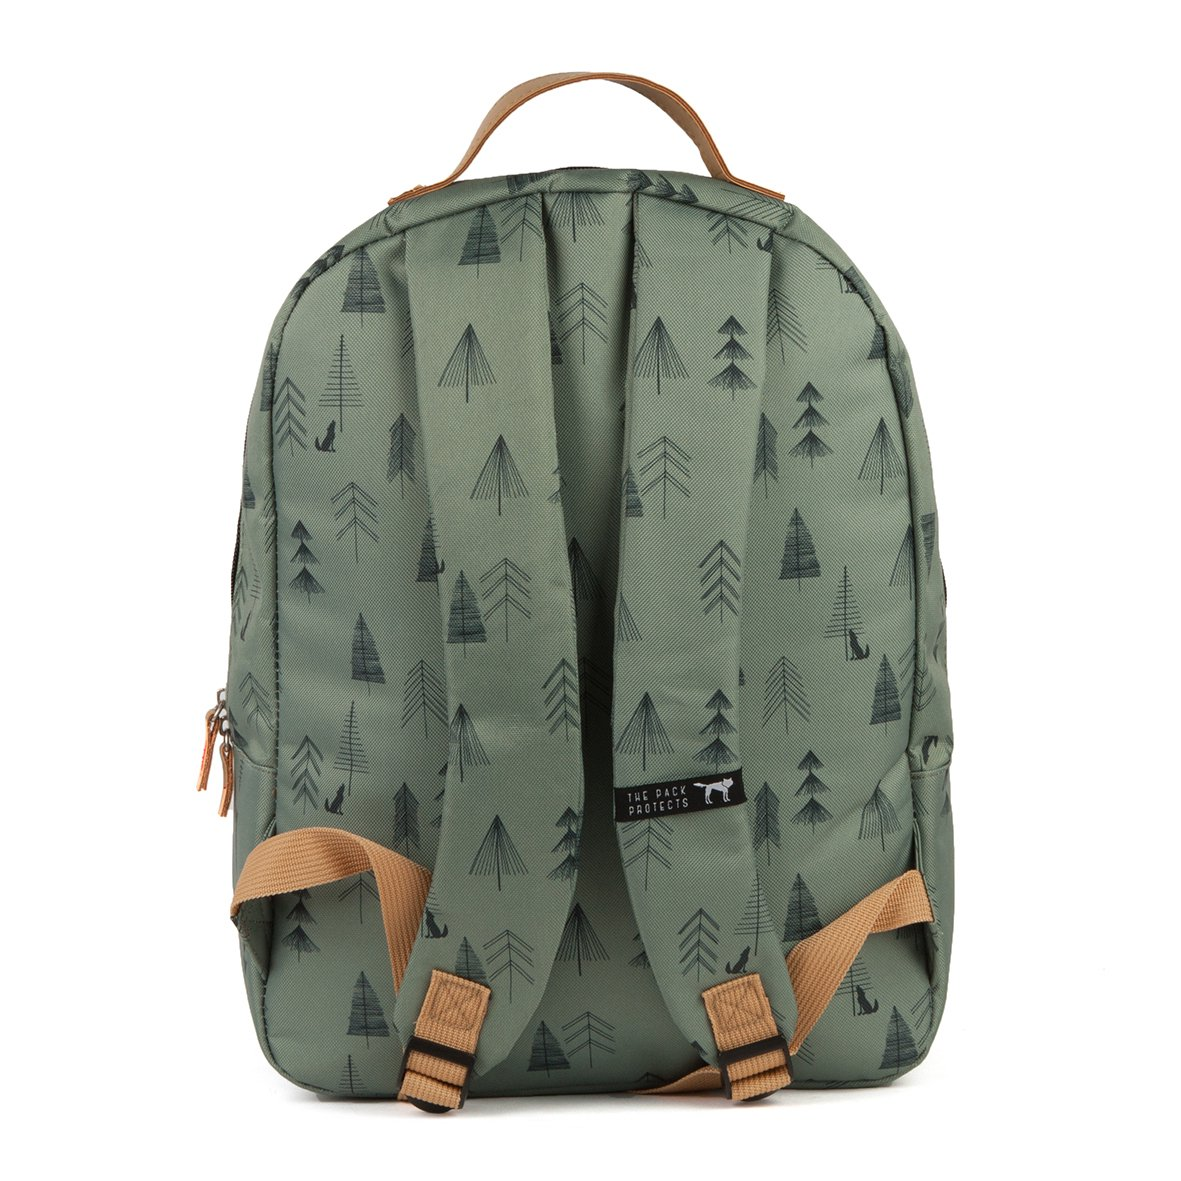 Рюкзак The pack society Classic Backpack (Green Tree Allover-74)